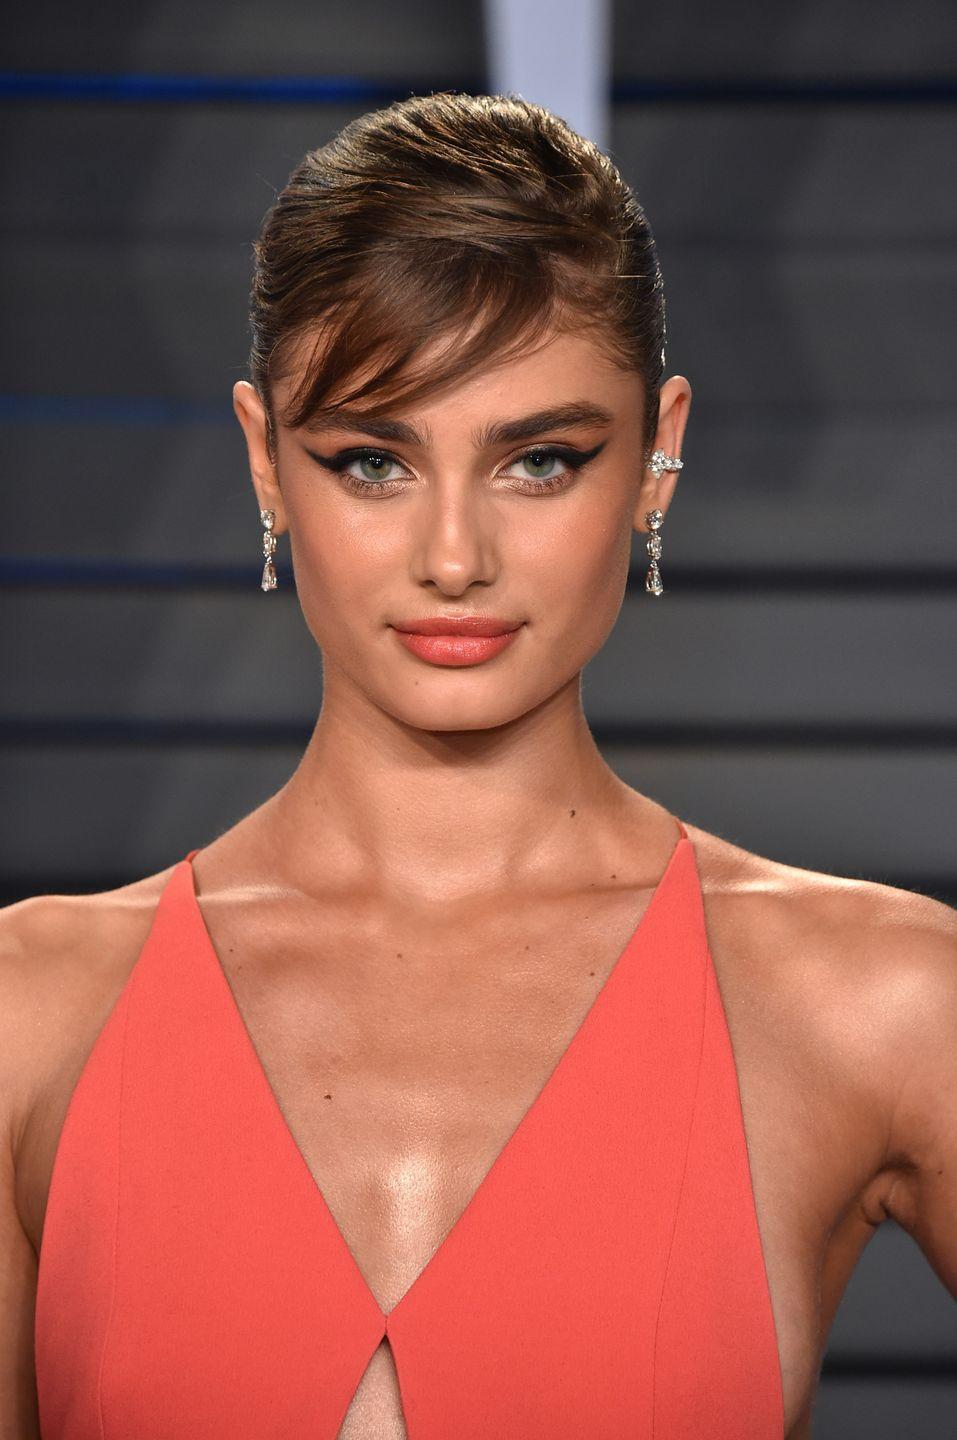 <p>Brushed to one side, Taylor Hill's Audrey Hepburn-esque side bangs are an unexpected accent to her electric coral gown and lipstick.</p>